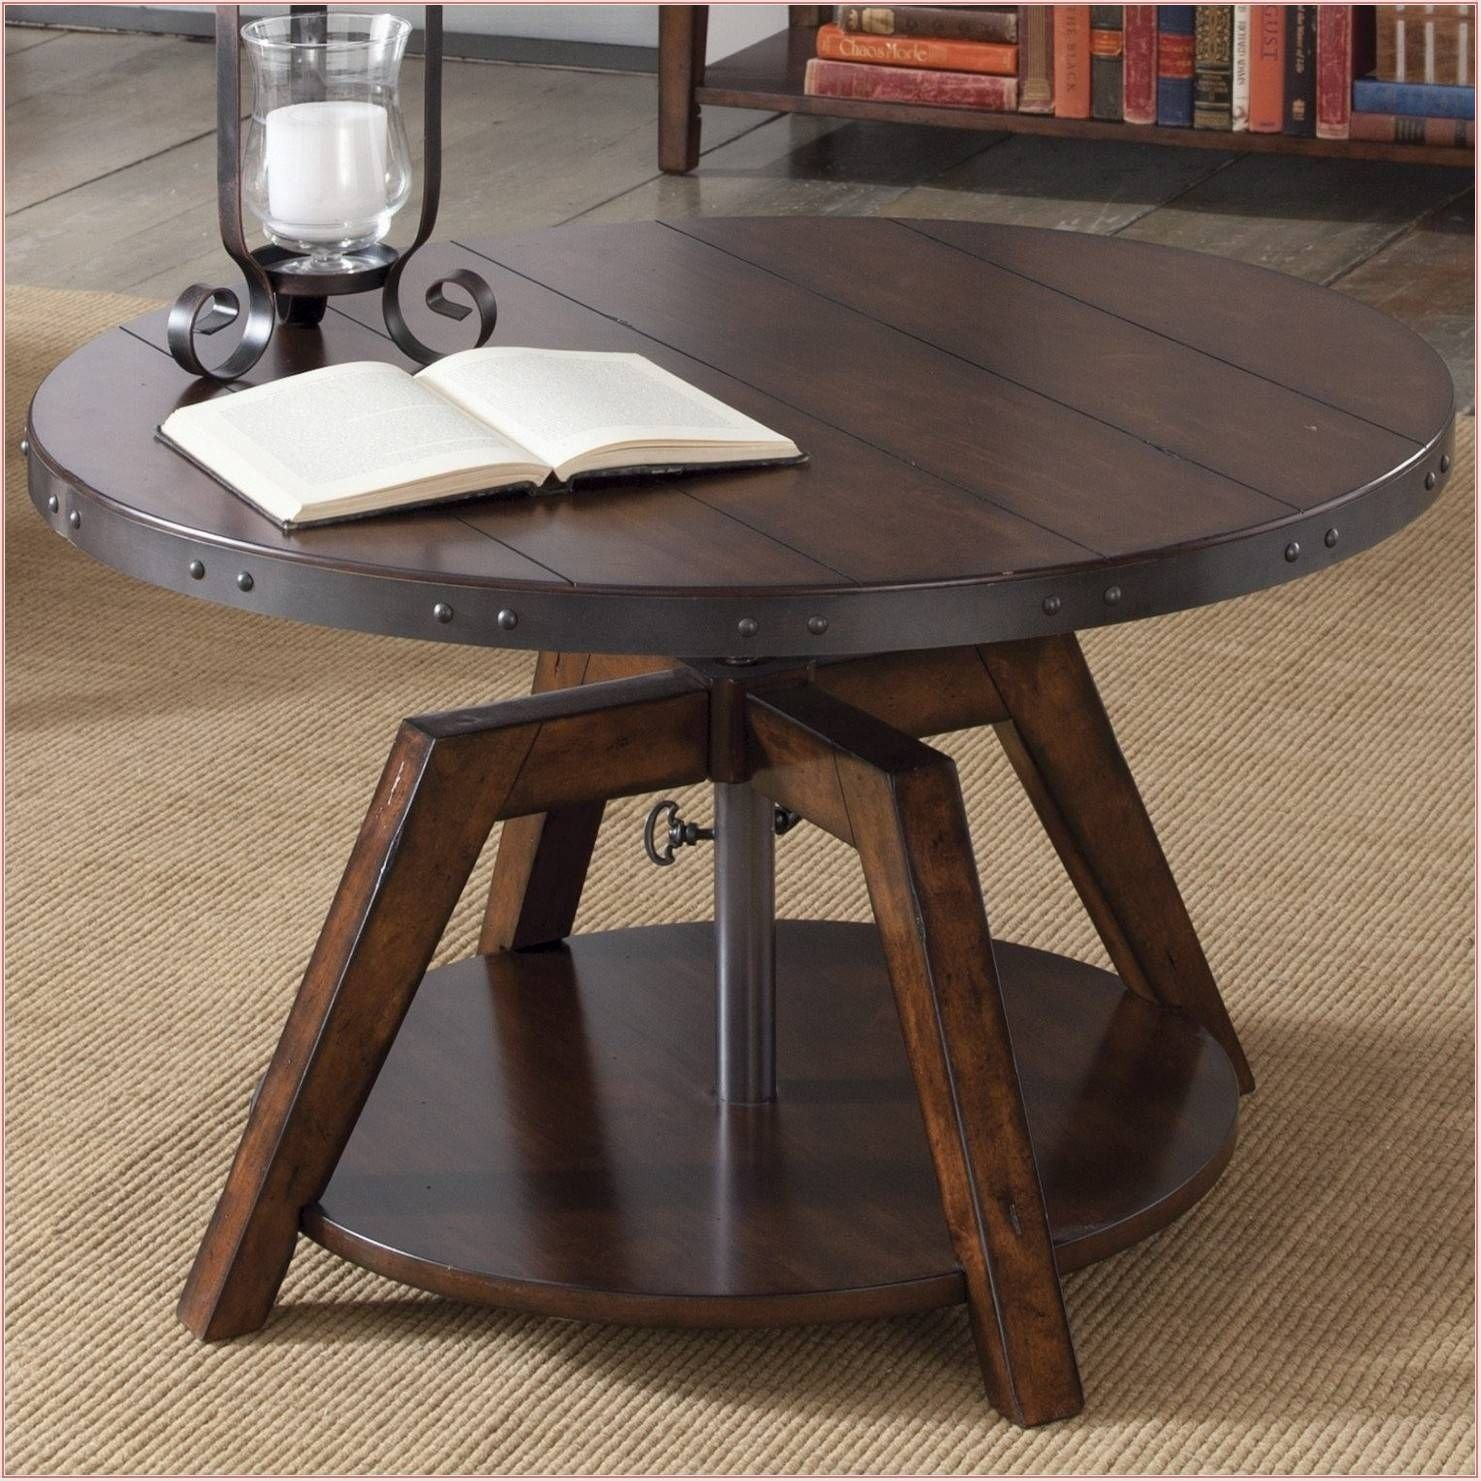 50 Amazing Convertible Coffee Table To Dining Table Up To 70 Off with dimensions 1481 X 1481